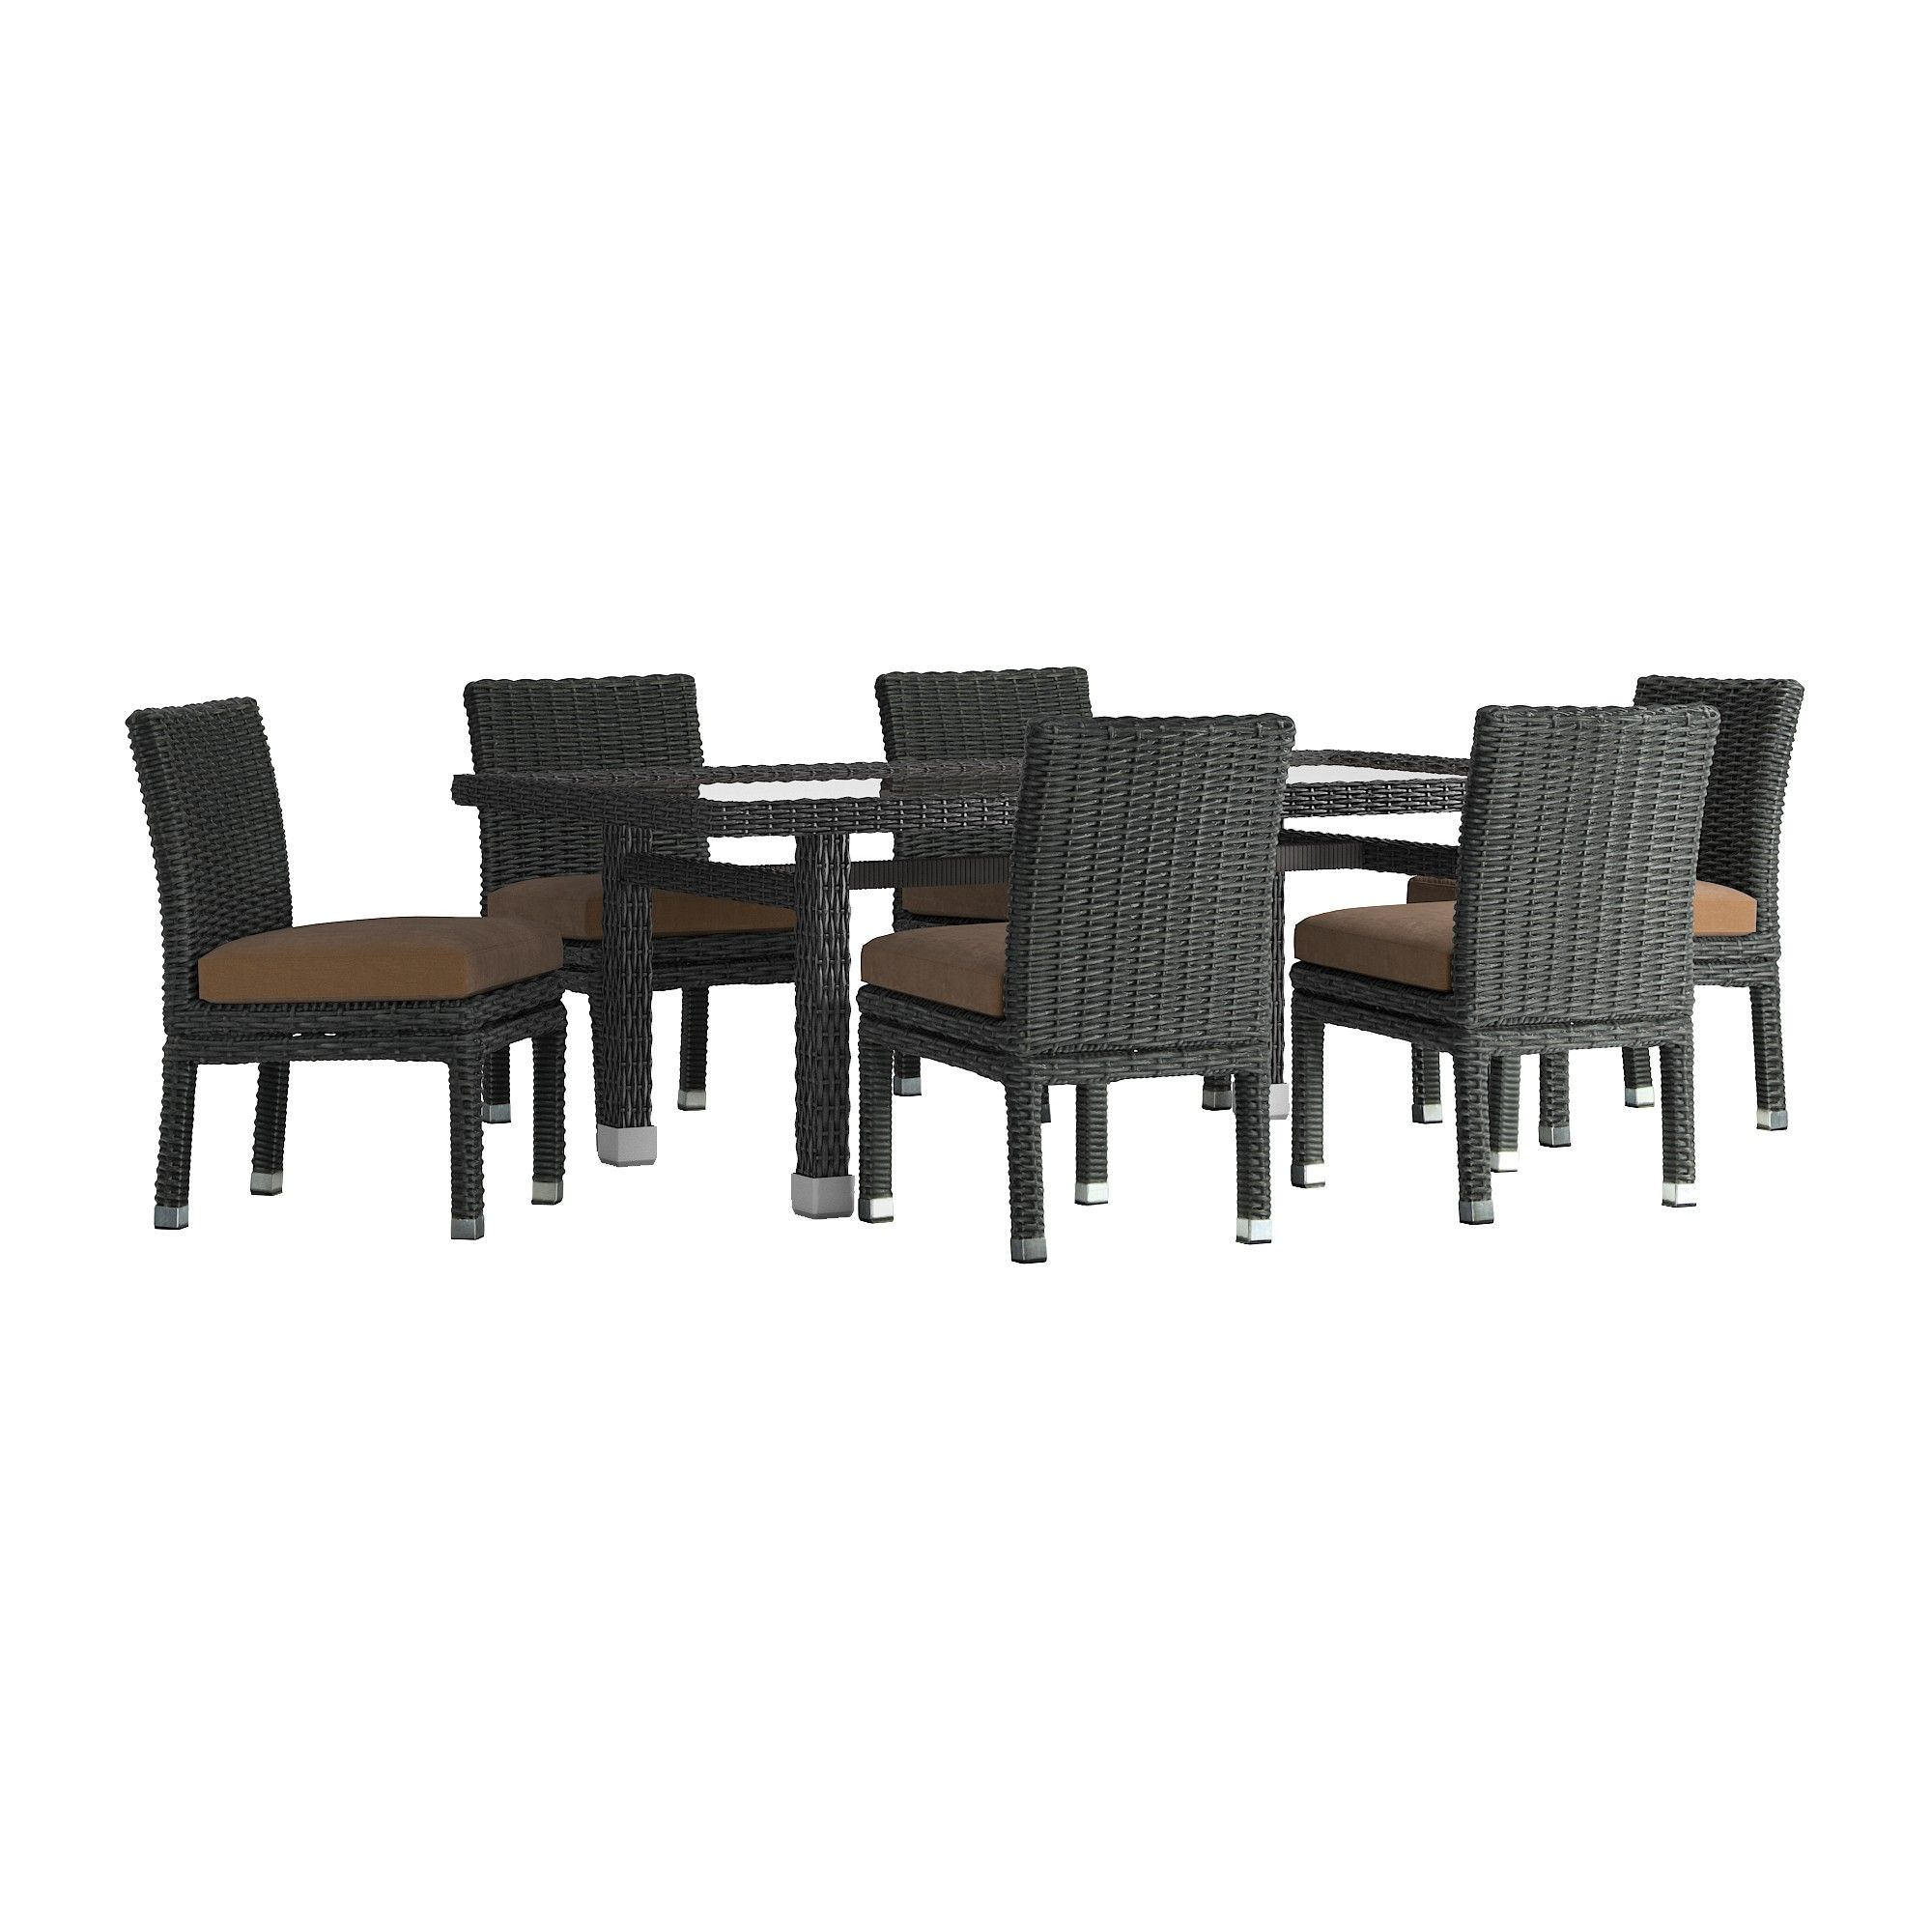 Riviera pointe pc glass top wicker patio rectangle dining set with